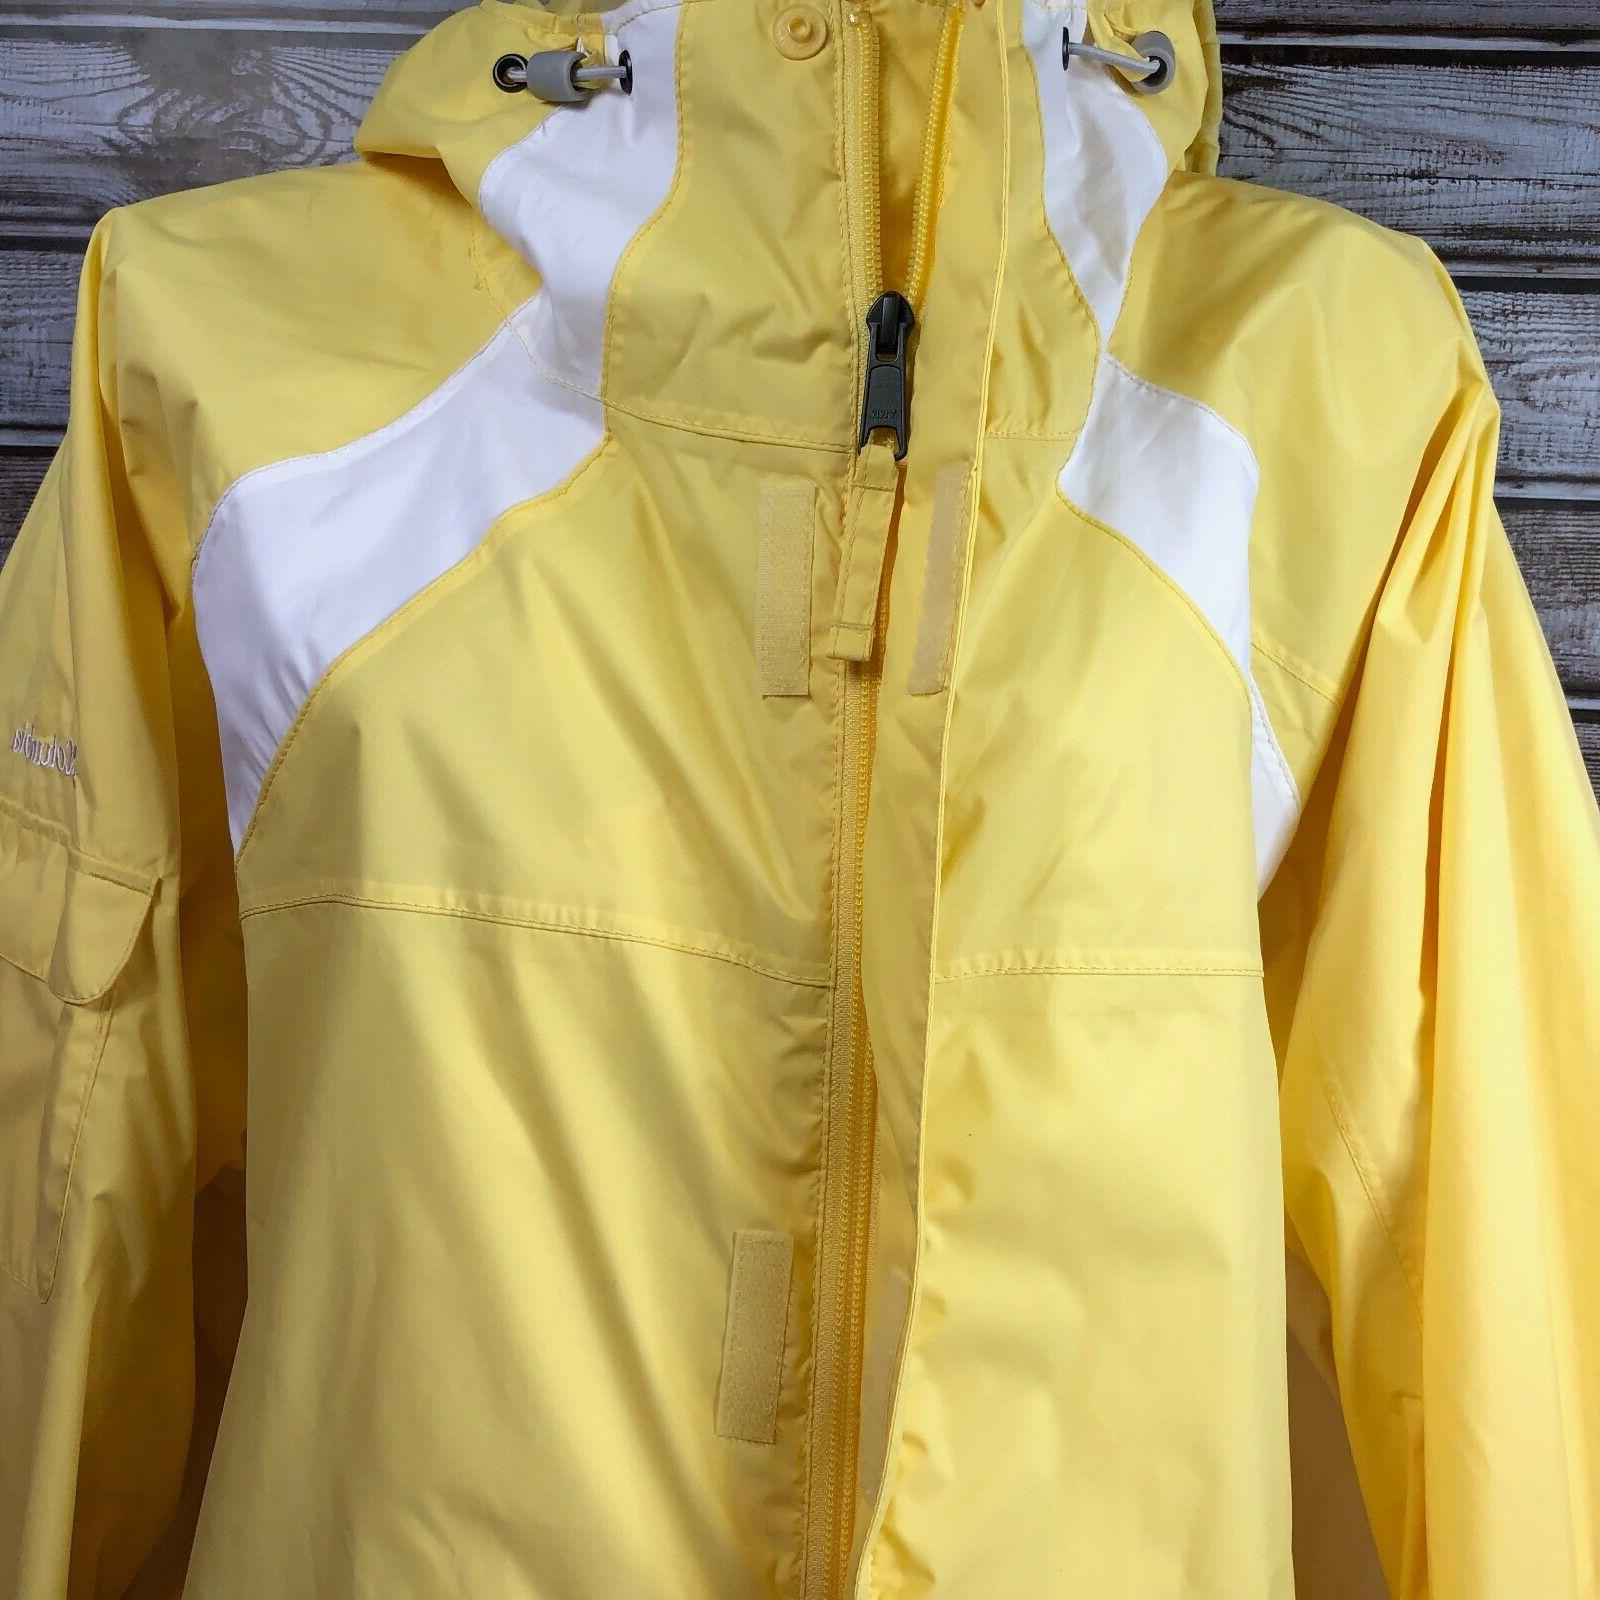 NWT Kona Plus 2X Yellow Rain Jacket